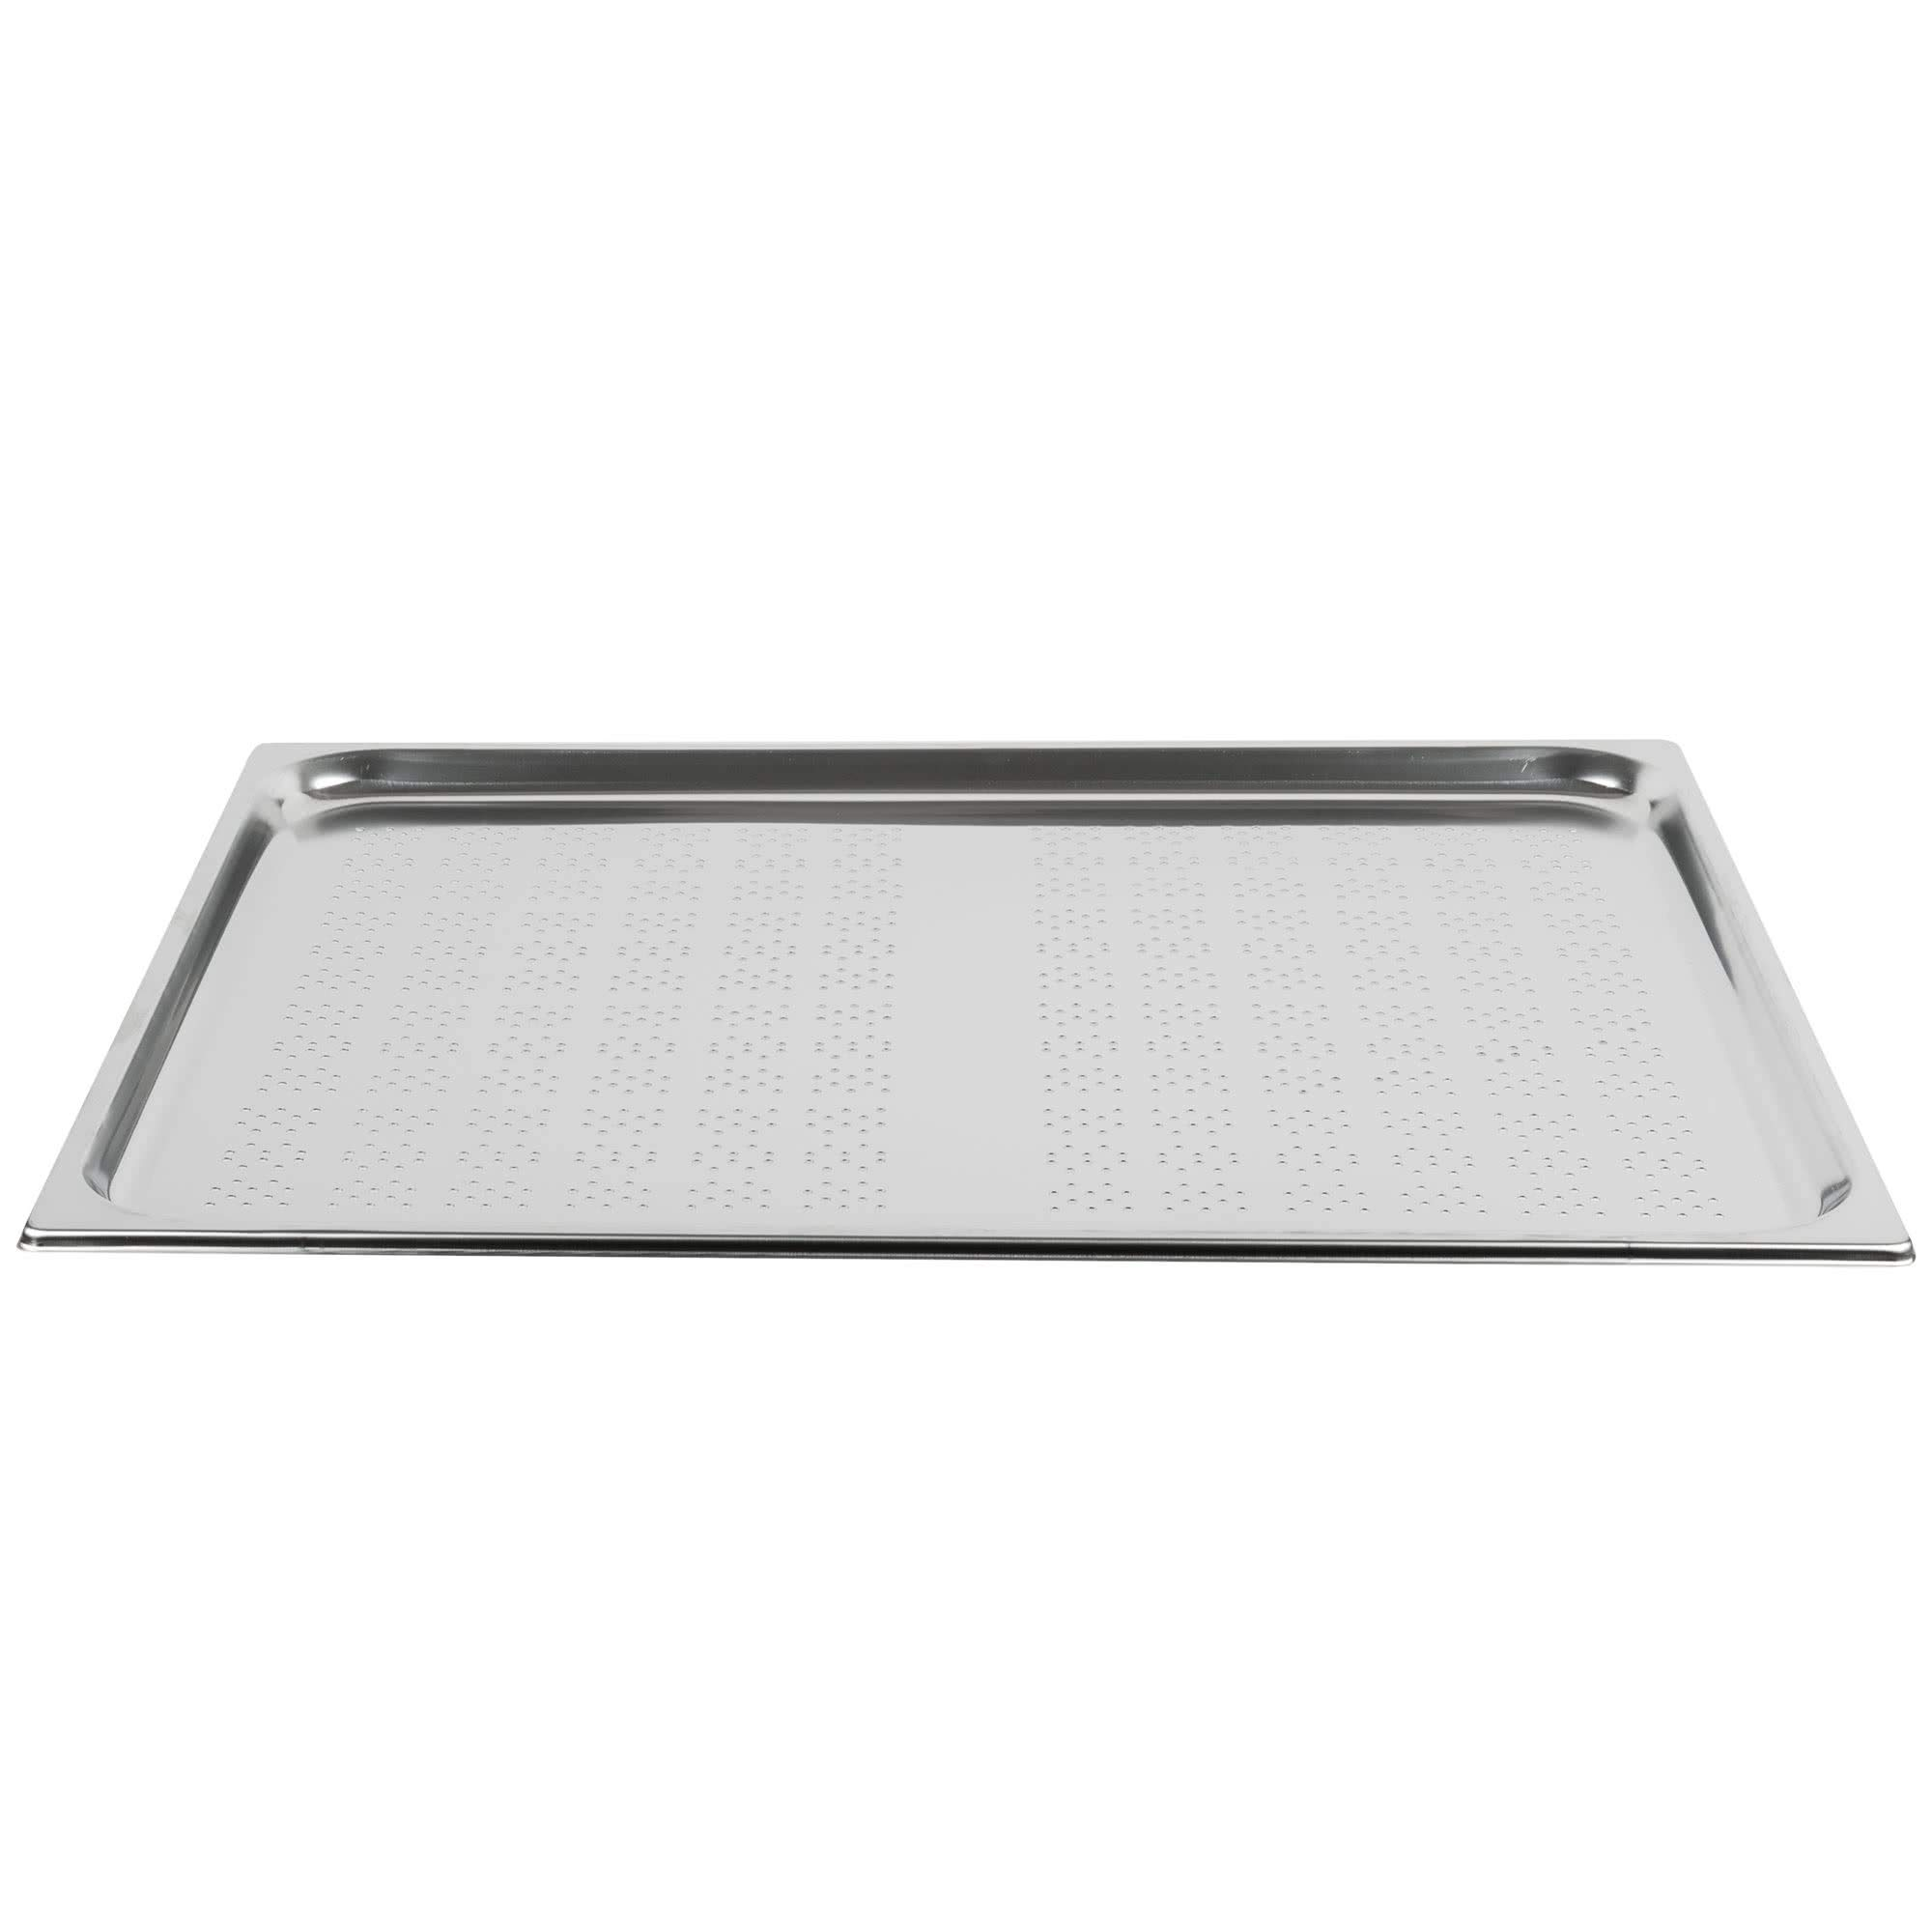 TableTop King V210202 Double Wide Perforated Stainless Steel Steam Table/Hotel Pan - 3/4'' Deep by TableTop King